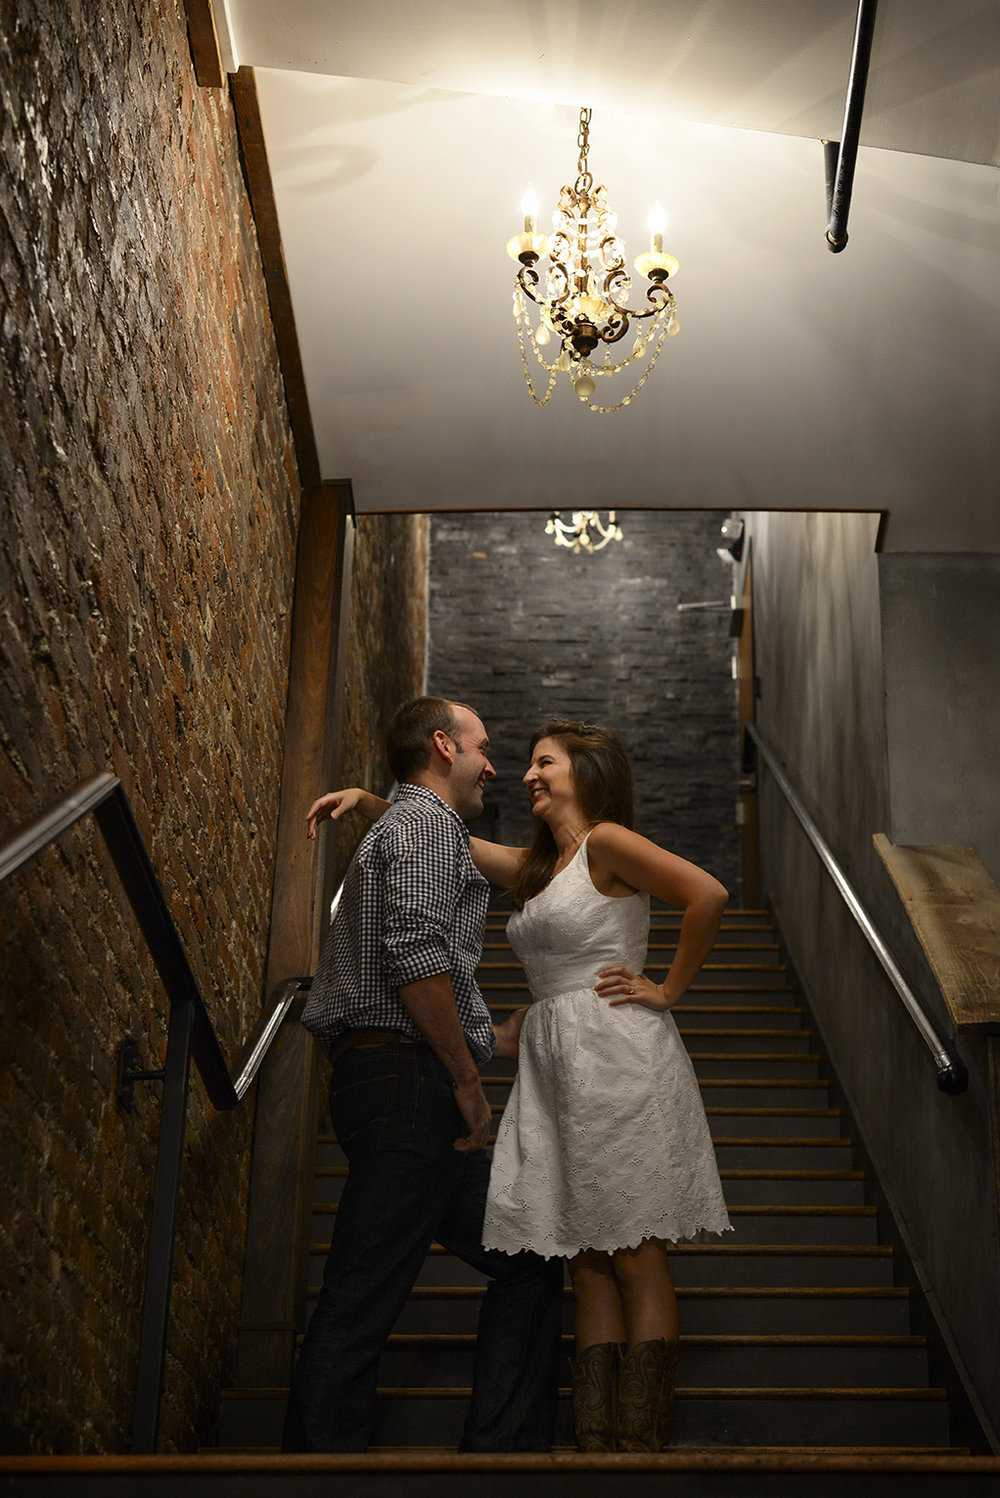 Hannah-Waylon-Downtown-Franklin-Grays-Stairs-Engagement